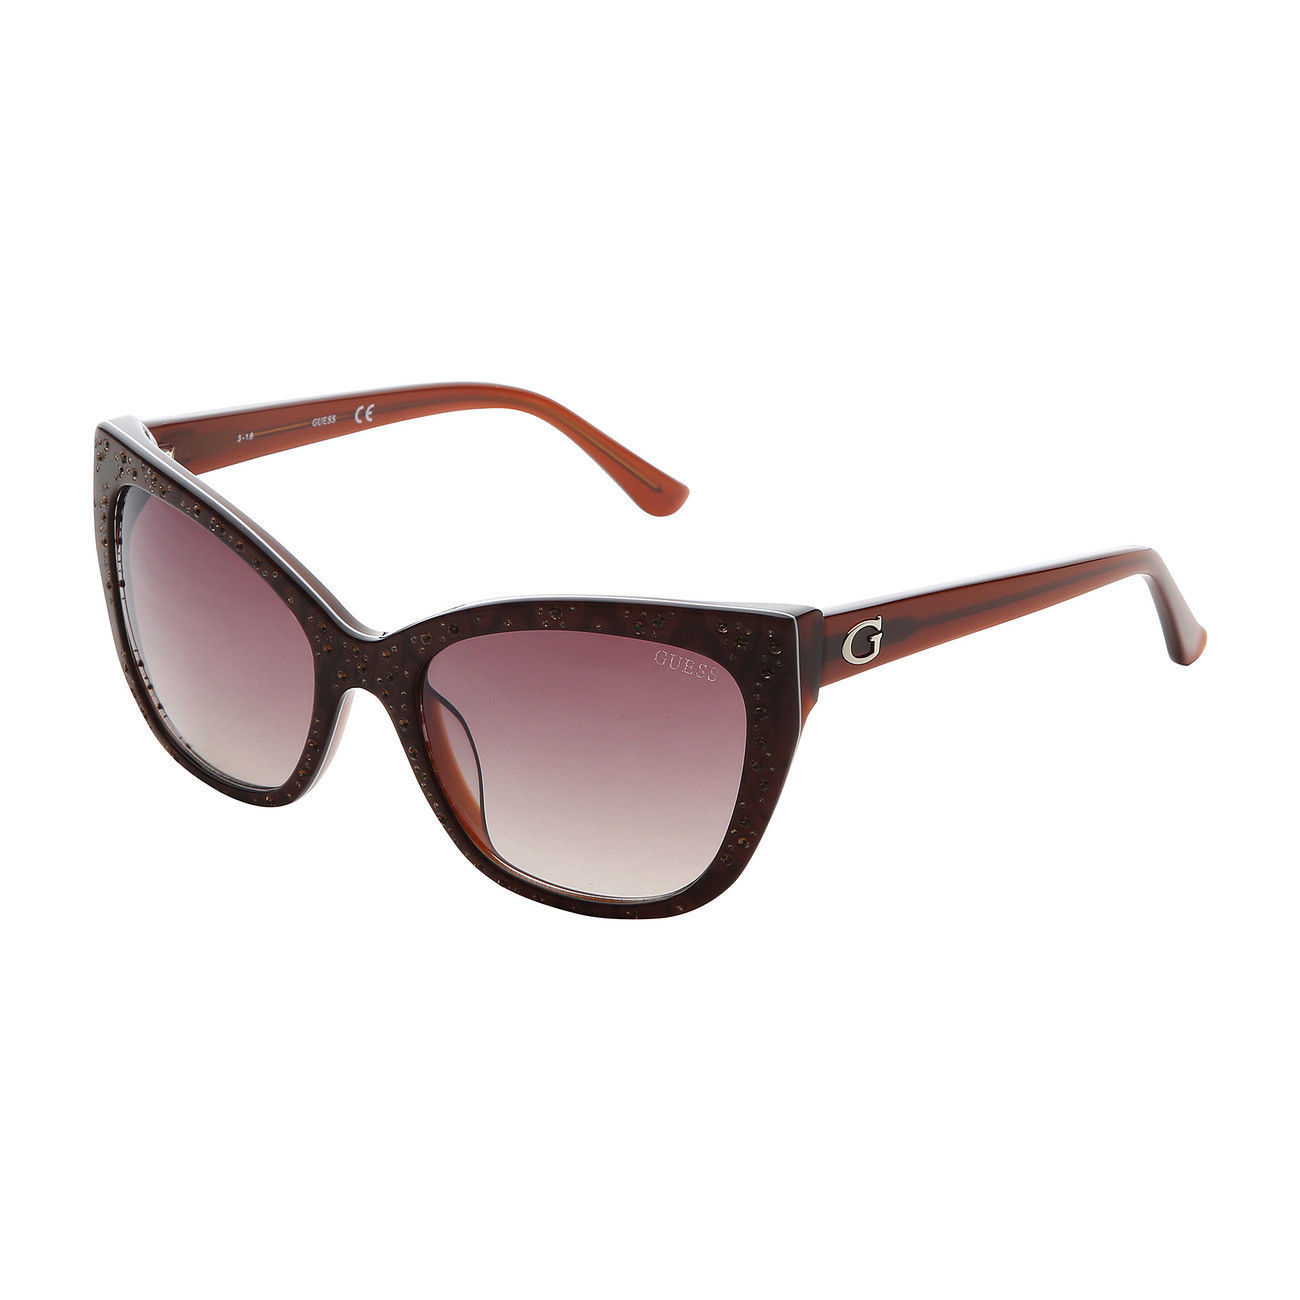 Womens Designer Sunglasses Guess GU7438 Brown Cat Eye UV Protected Polarized